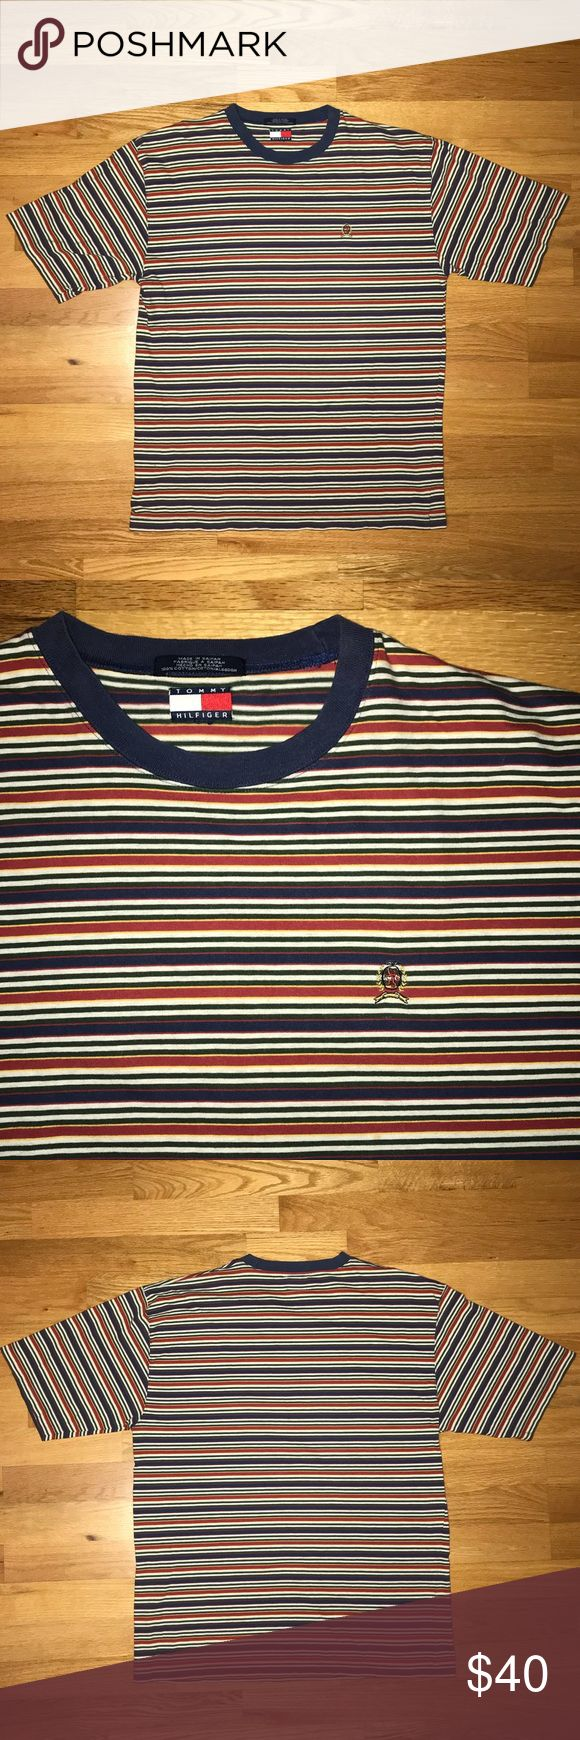 Vintage Tommy Hilfiger Striped T Shirt Very stylish striped t shirt from Tommy Hilfiger. Blue, Red, Green, Yellow and white stripes go well together with anything. Tommy crest on chest and flag on neck. Tommy Hilfiger Shirts Tees - Short Sleeve